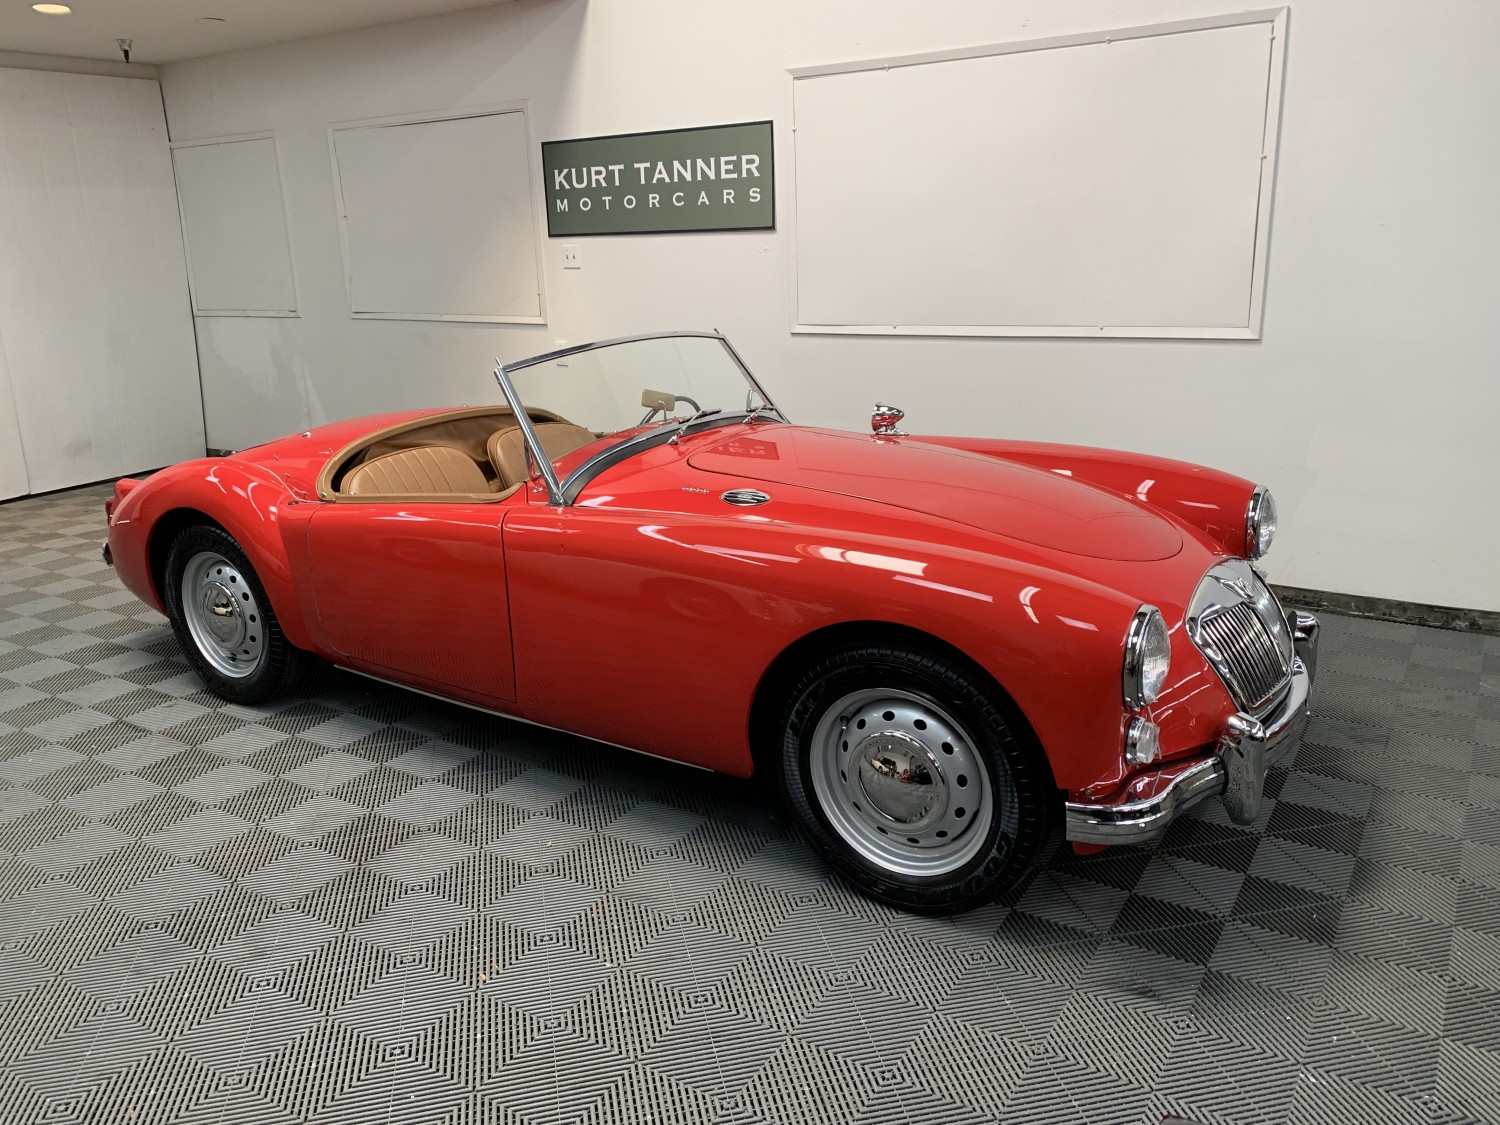 1960 MGA 1600 ROADSTER. CHARIOT RED WITH BEIGE TRIM. BLACK CARPETS. BEIGE TONNEAU COVER. 4-SPEED, DISC WHEELS, 1800cc ENGINE. NICE RESTORATION. SUPERB DRIVER.